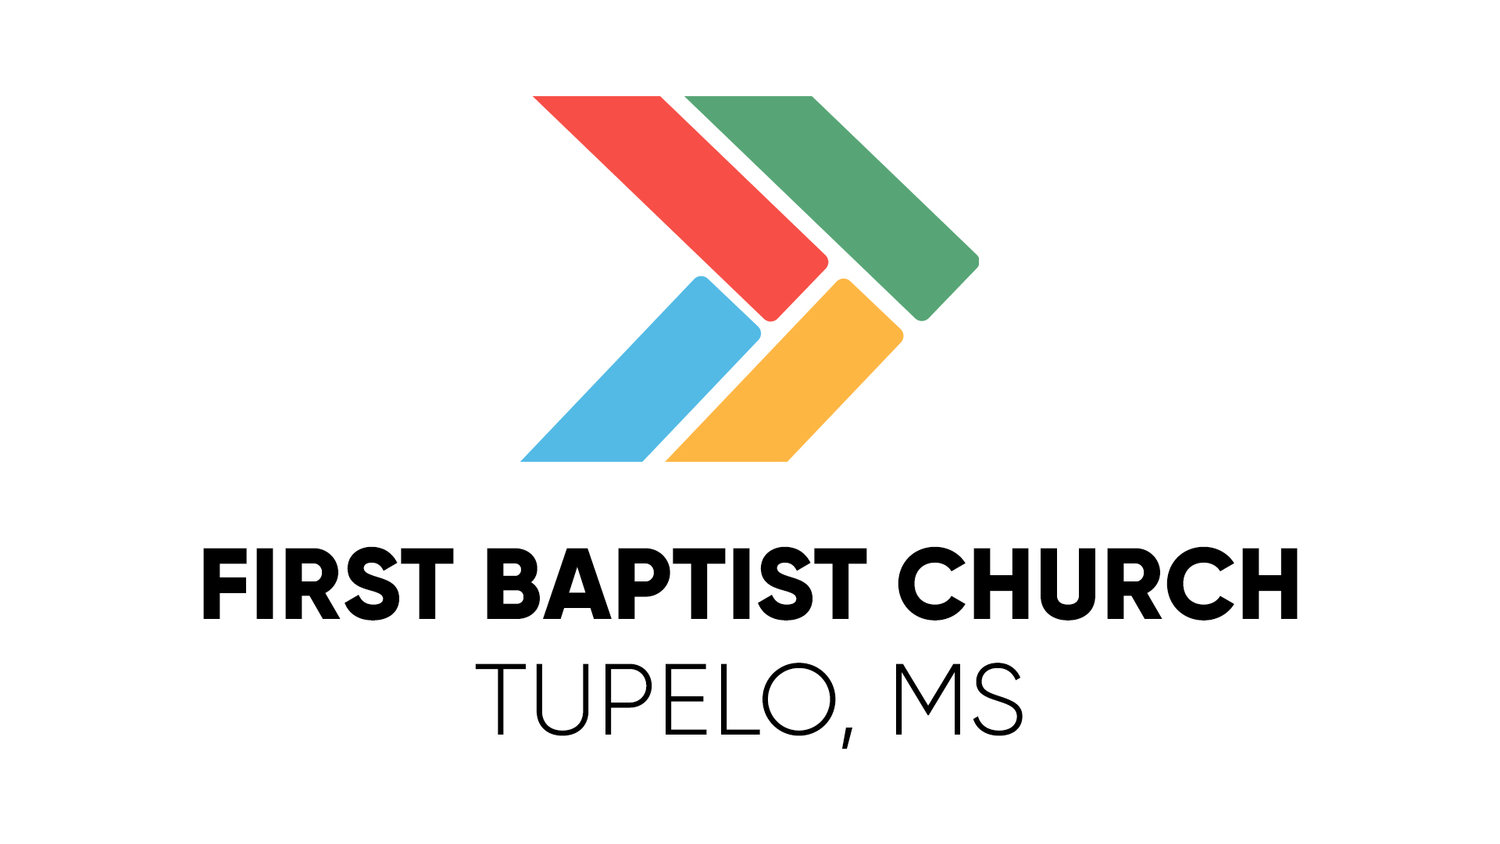 First Baptist Church Tupelo